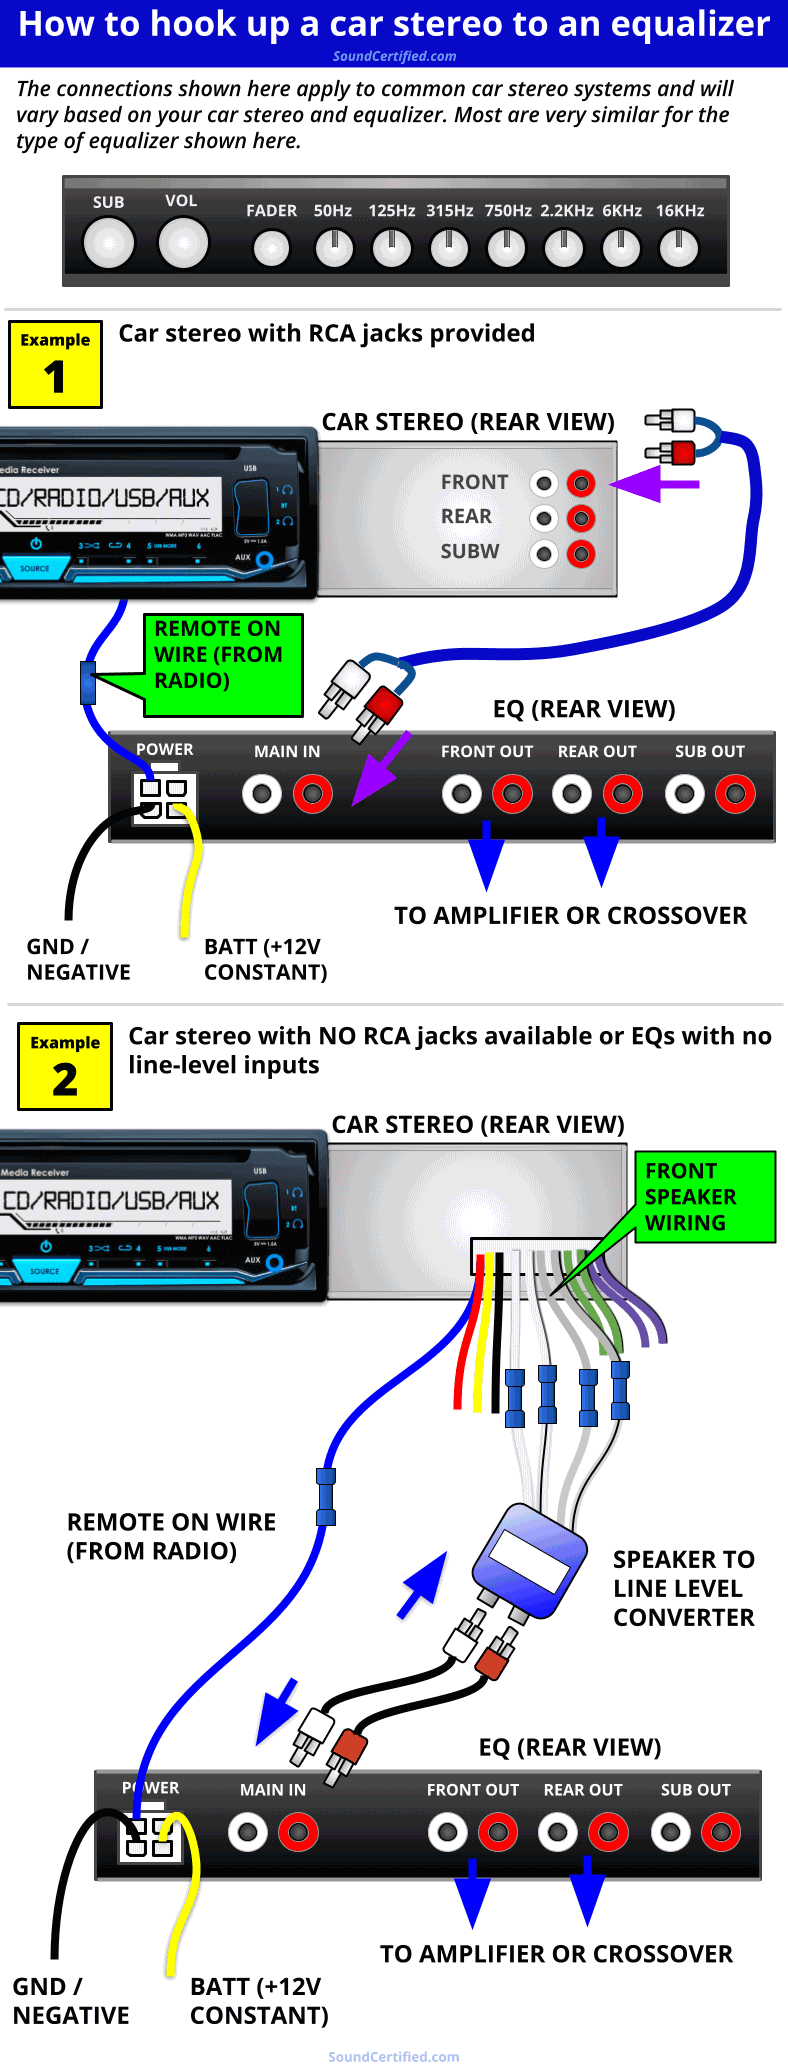 how to hook up a car stereo to an equalizer diagram